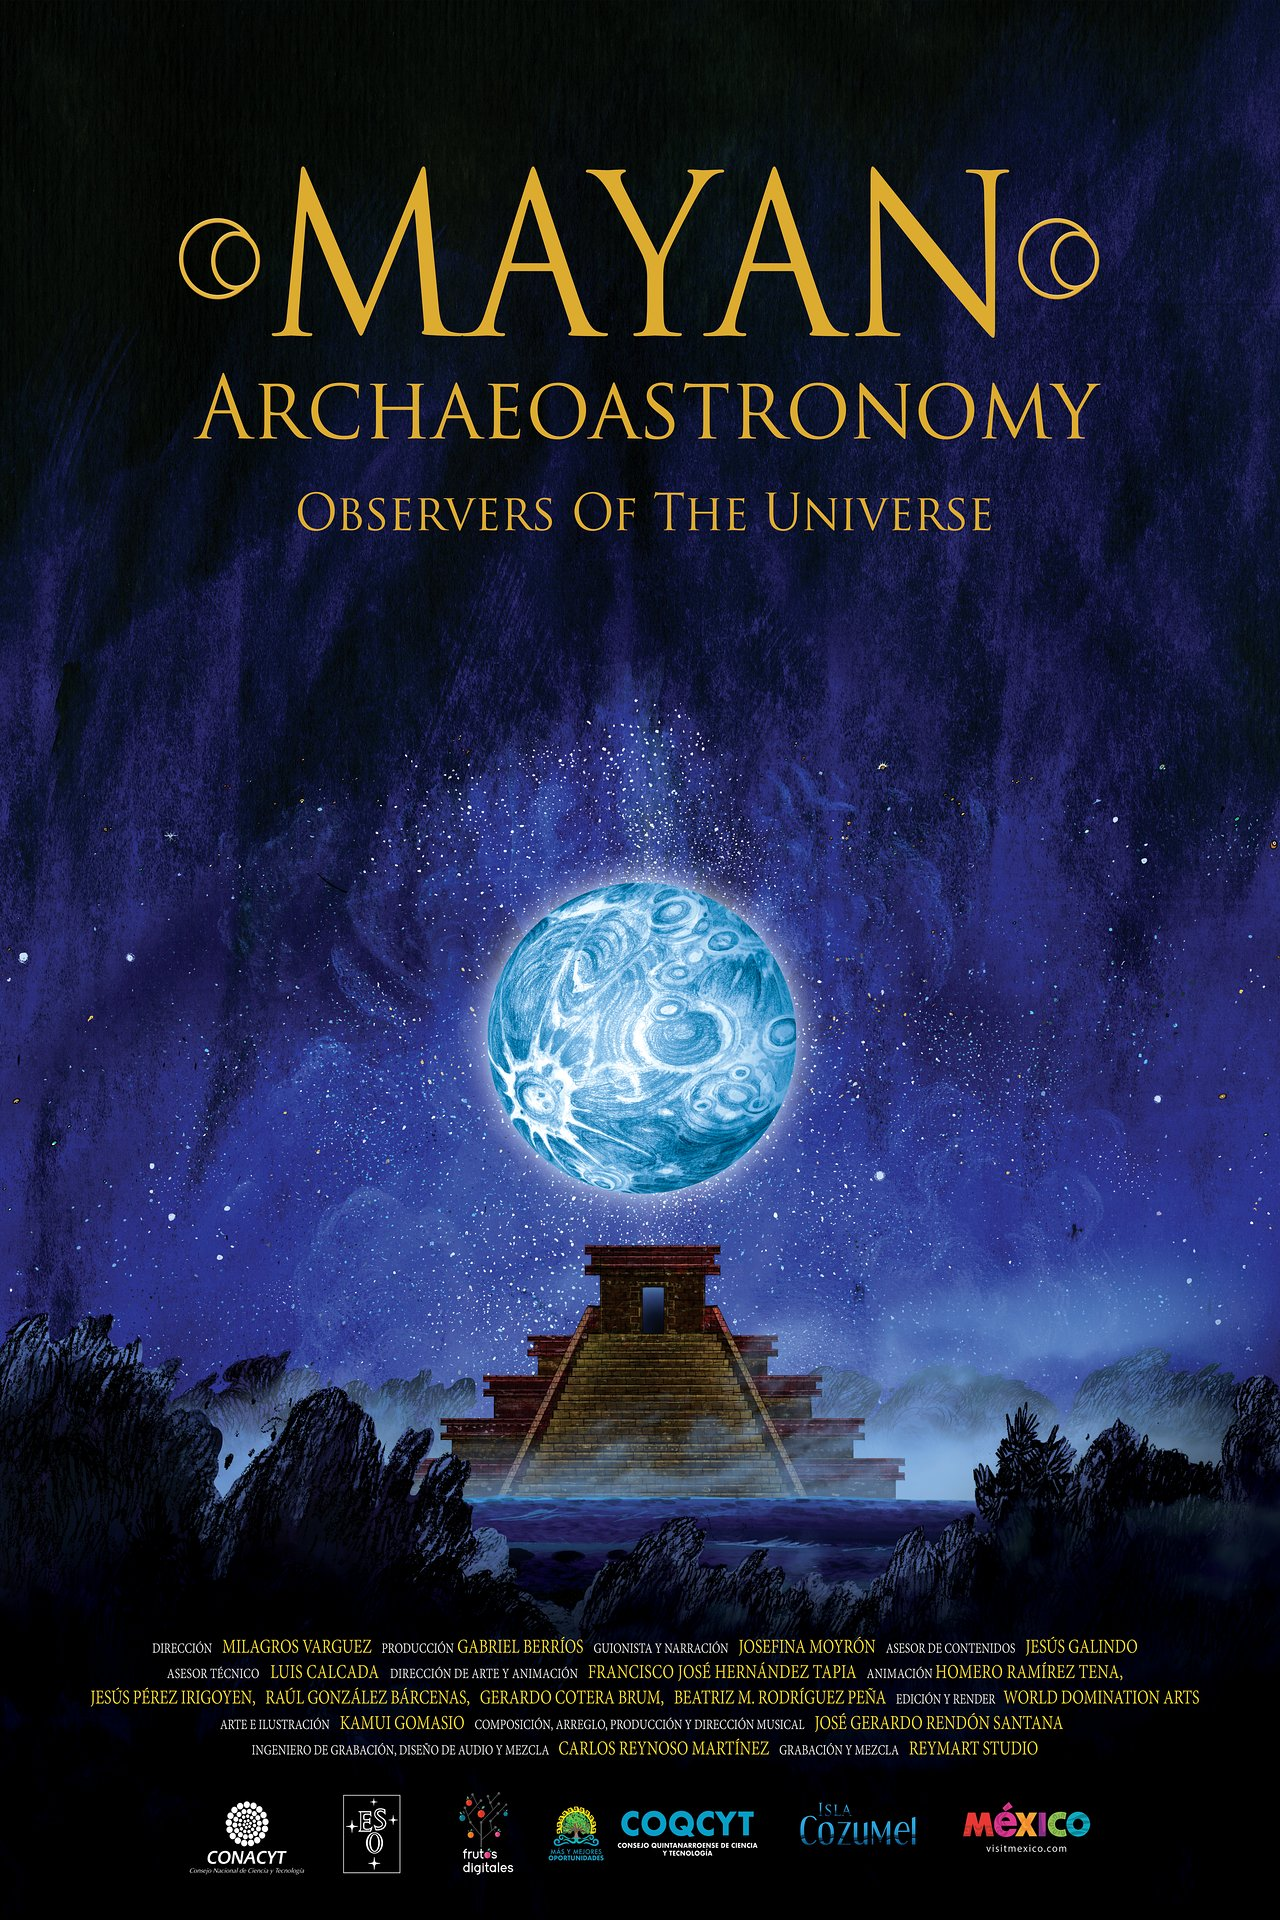 Image result for eso planetarium video mayan archaeoastronomy images